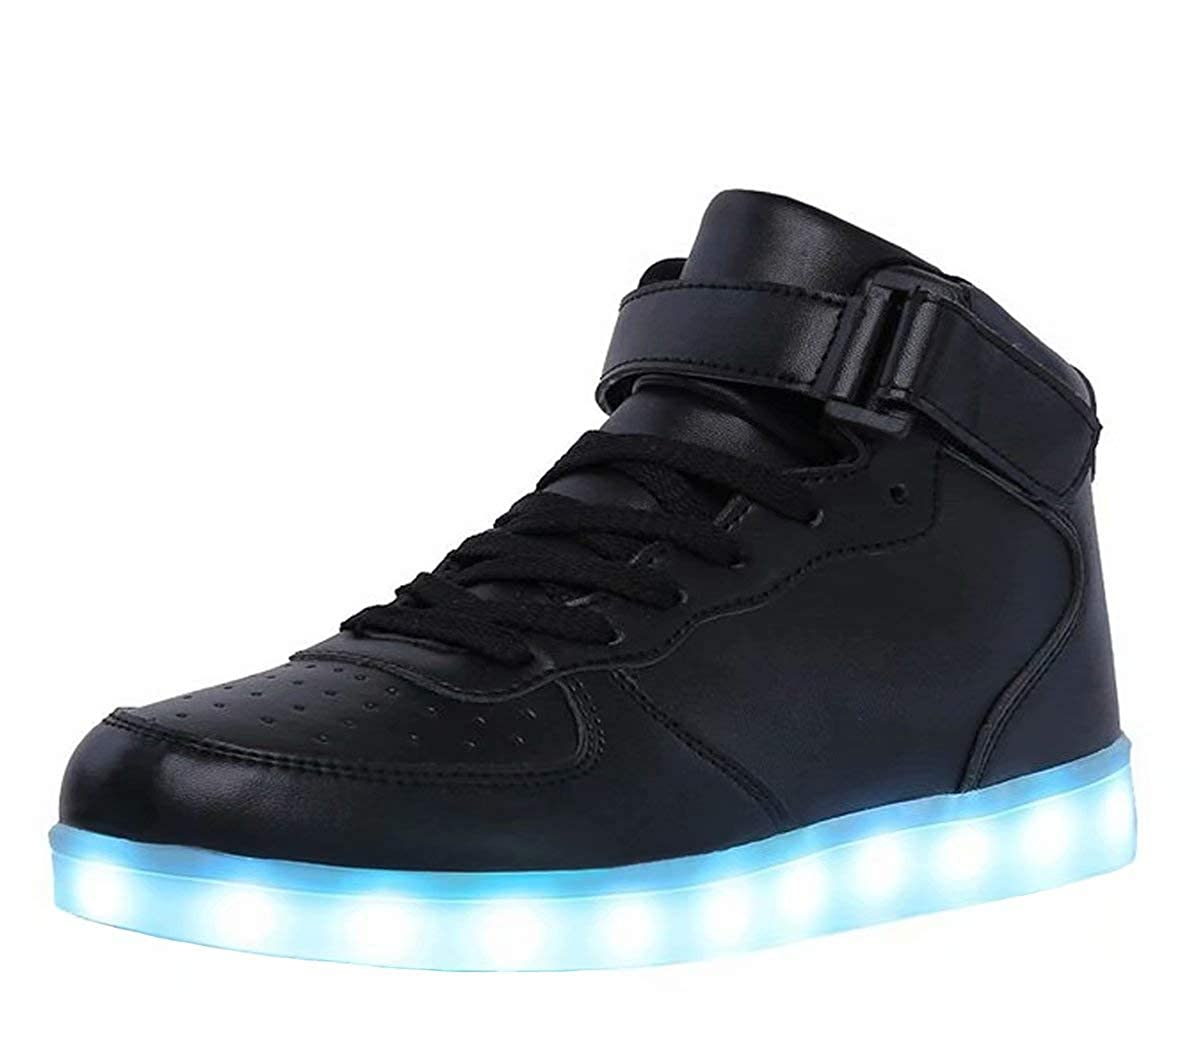 new style 7ea72 220fe WONZOM FASHION High Top LED Light Up Shoes USB Charging Sneakers for Men  Women  Amazon.ca  Shoes   Handbags